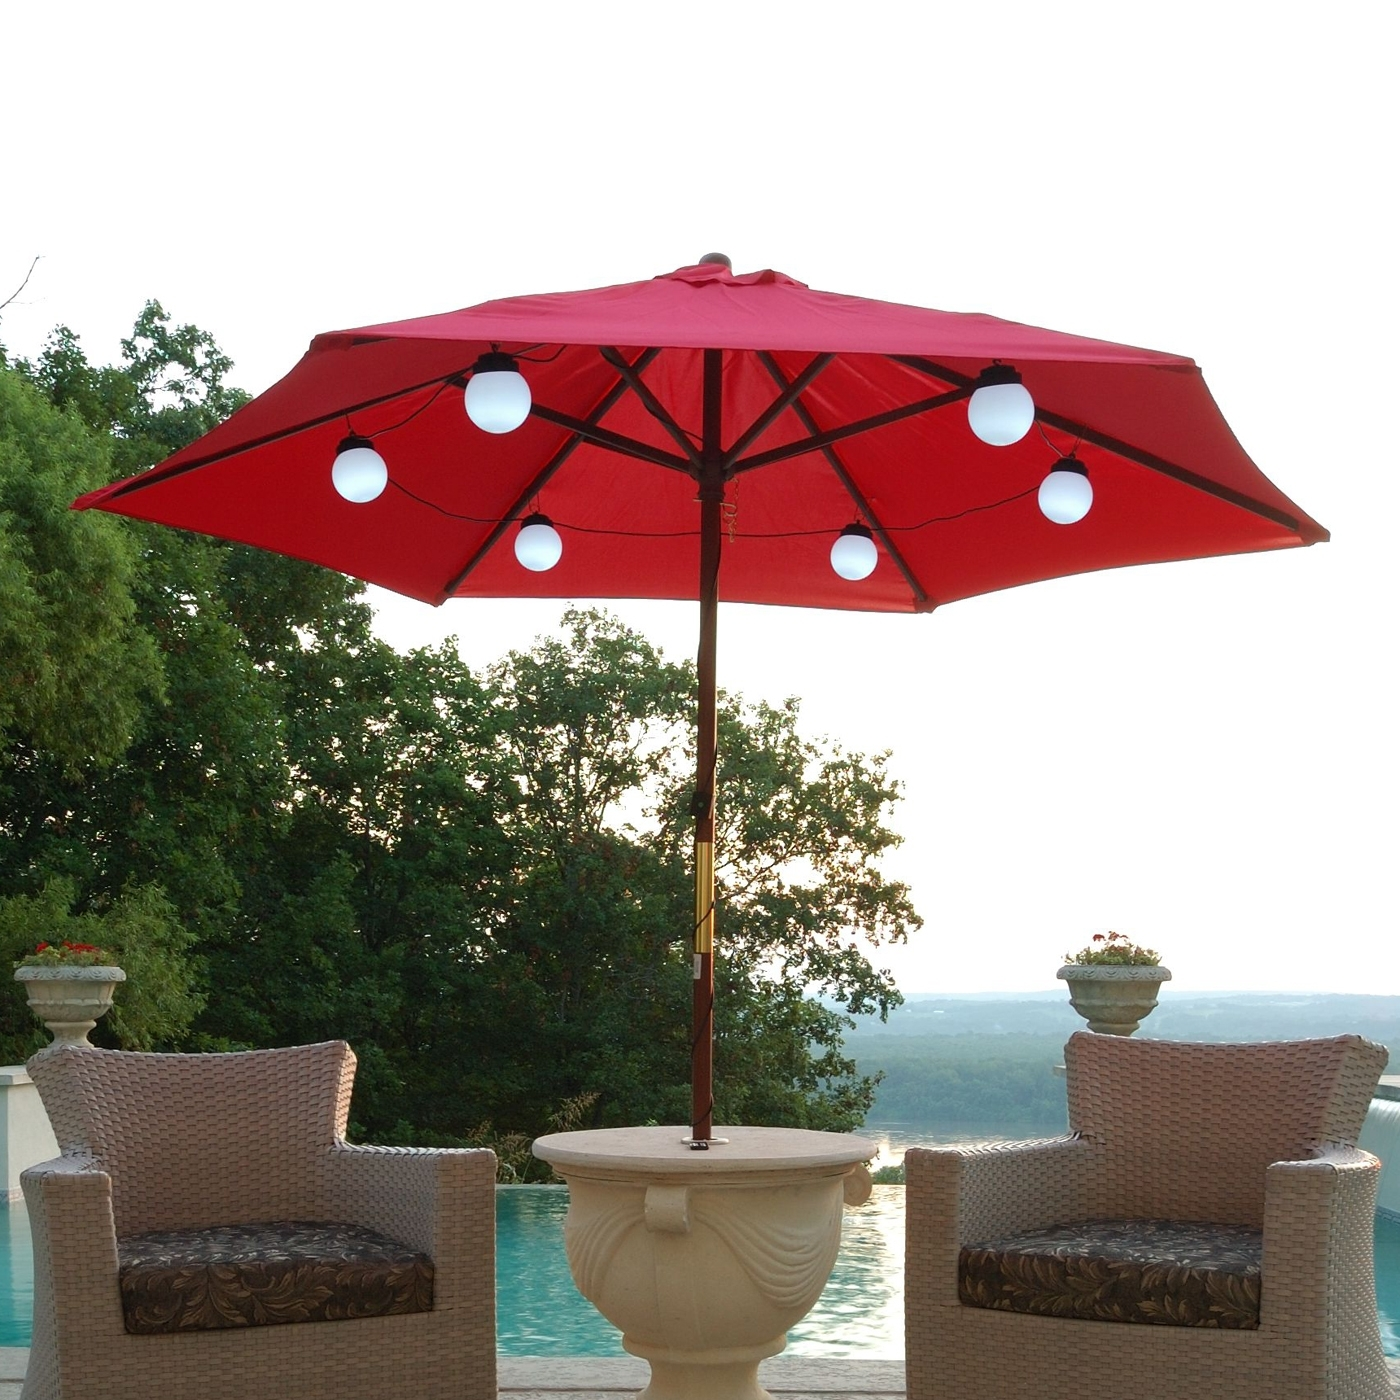 Patio Living Concepts 080 Bright White Led Solar Powered Umbrella Inside Most Popular Patio Umbrellas With Solar Lights (View 15 of 20)